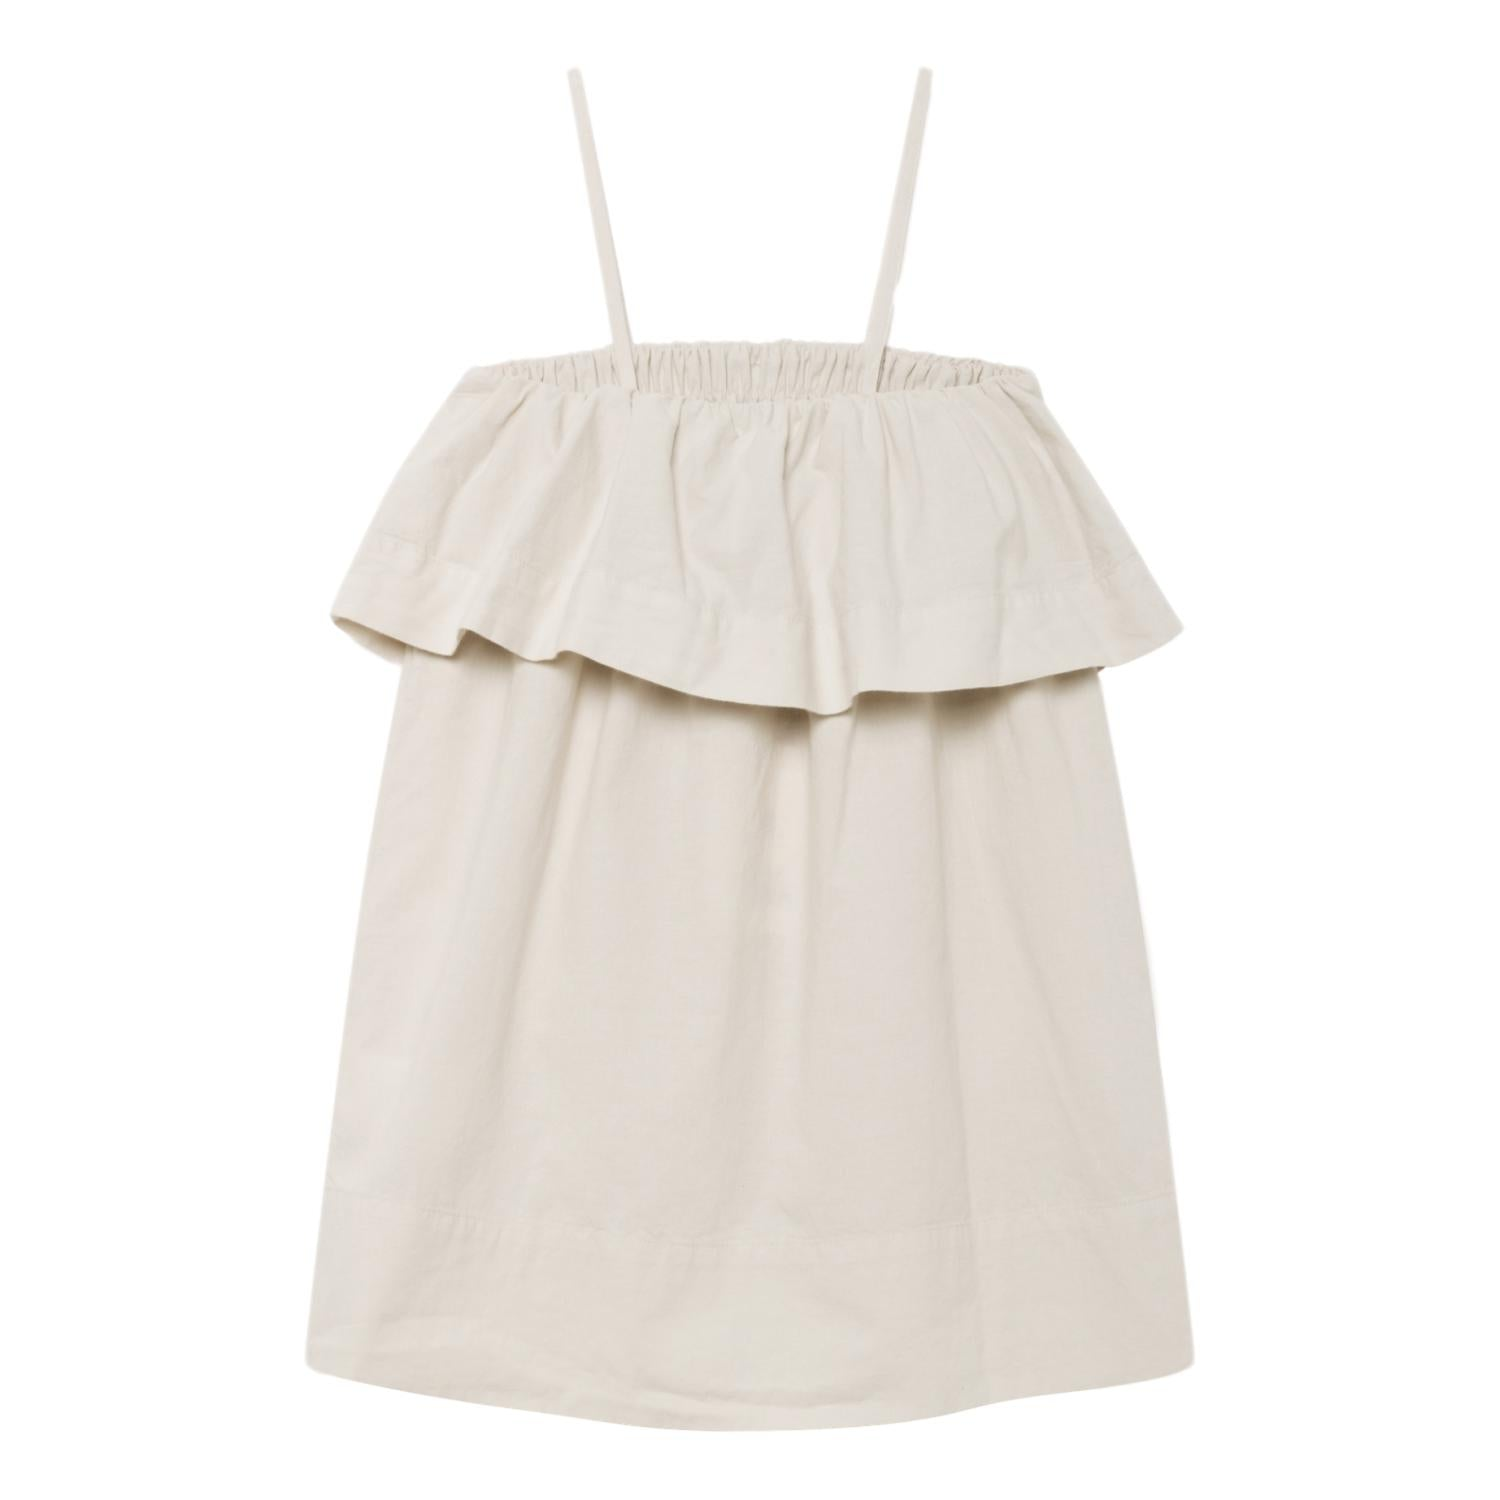 THE ANIMALS OBSERVATORY - Raw White Peach Dove Kids Dress